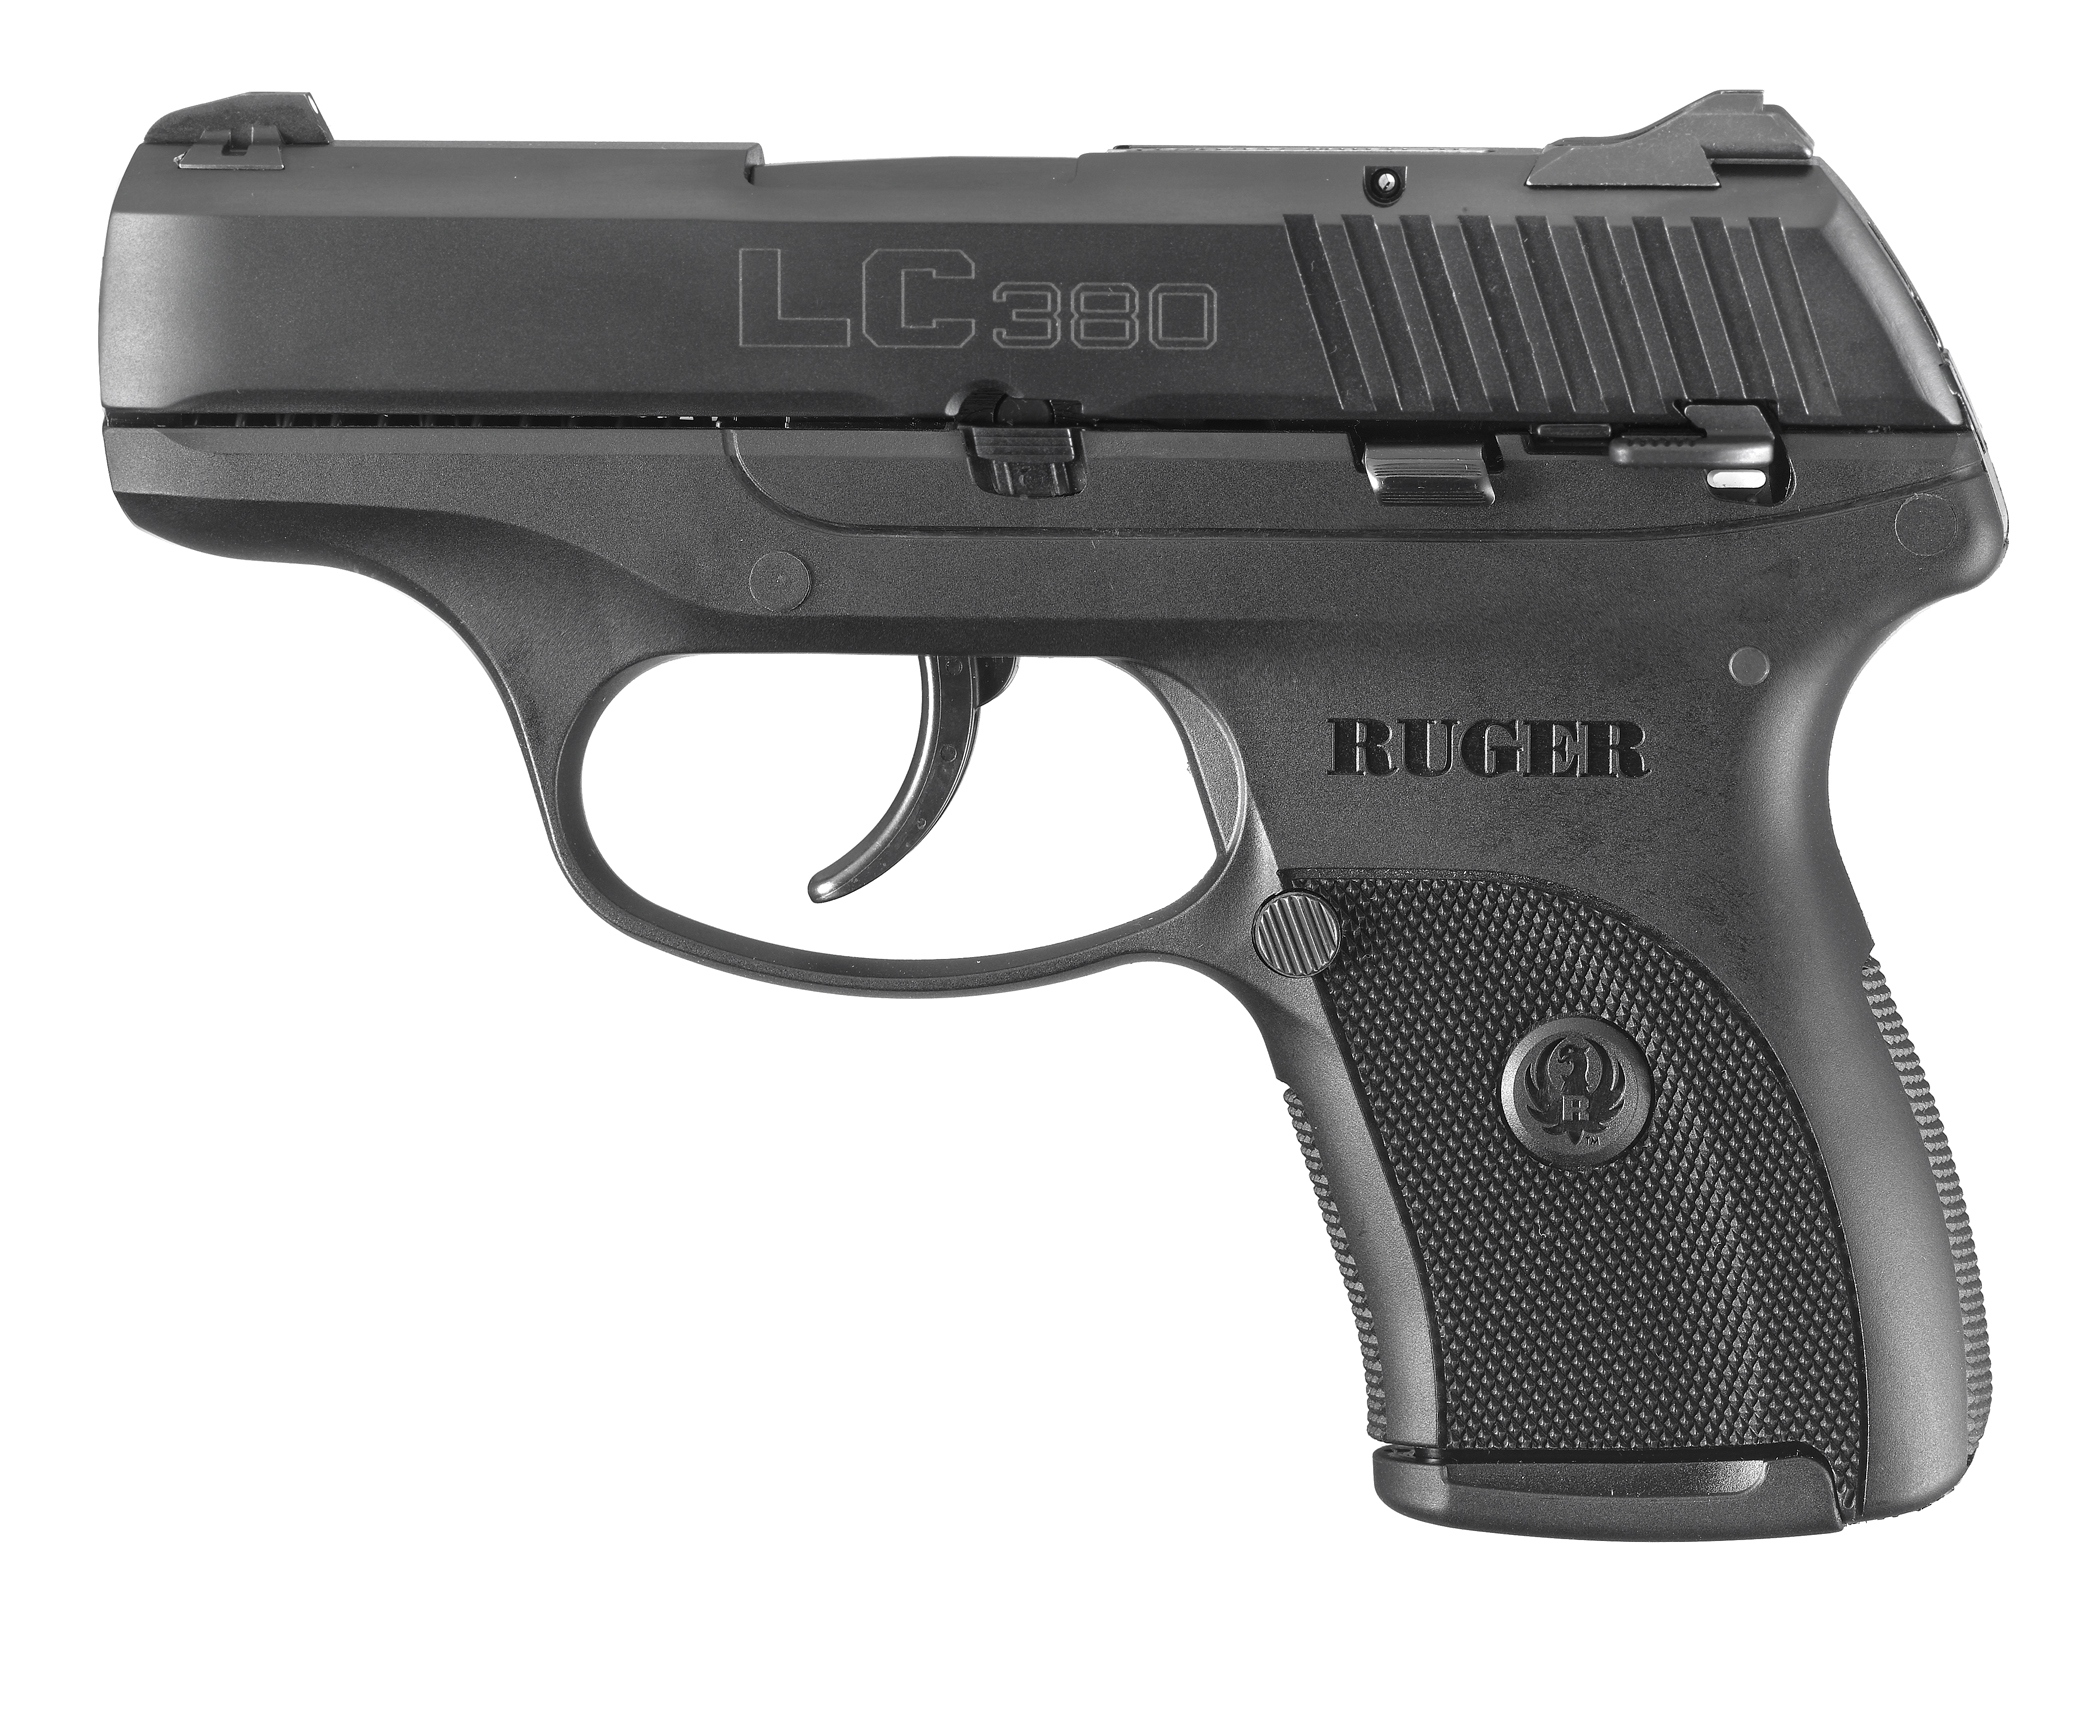 Ruger LC380 Subcompact Pistol